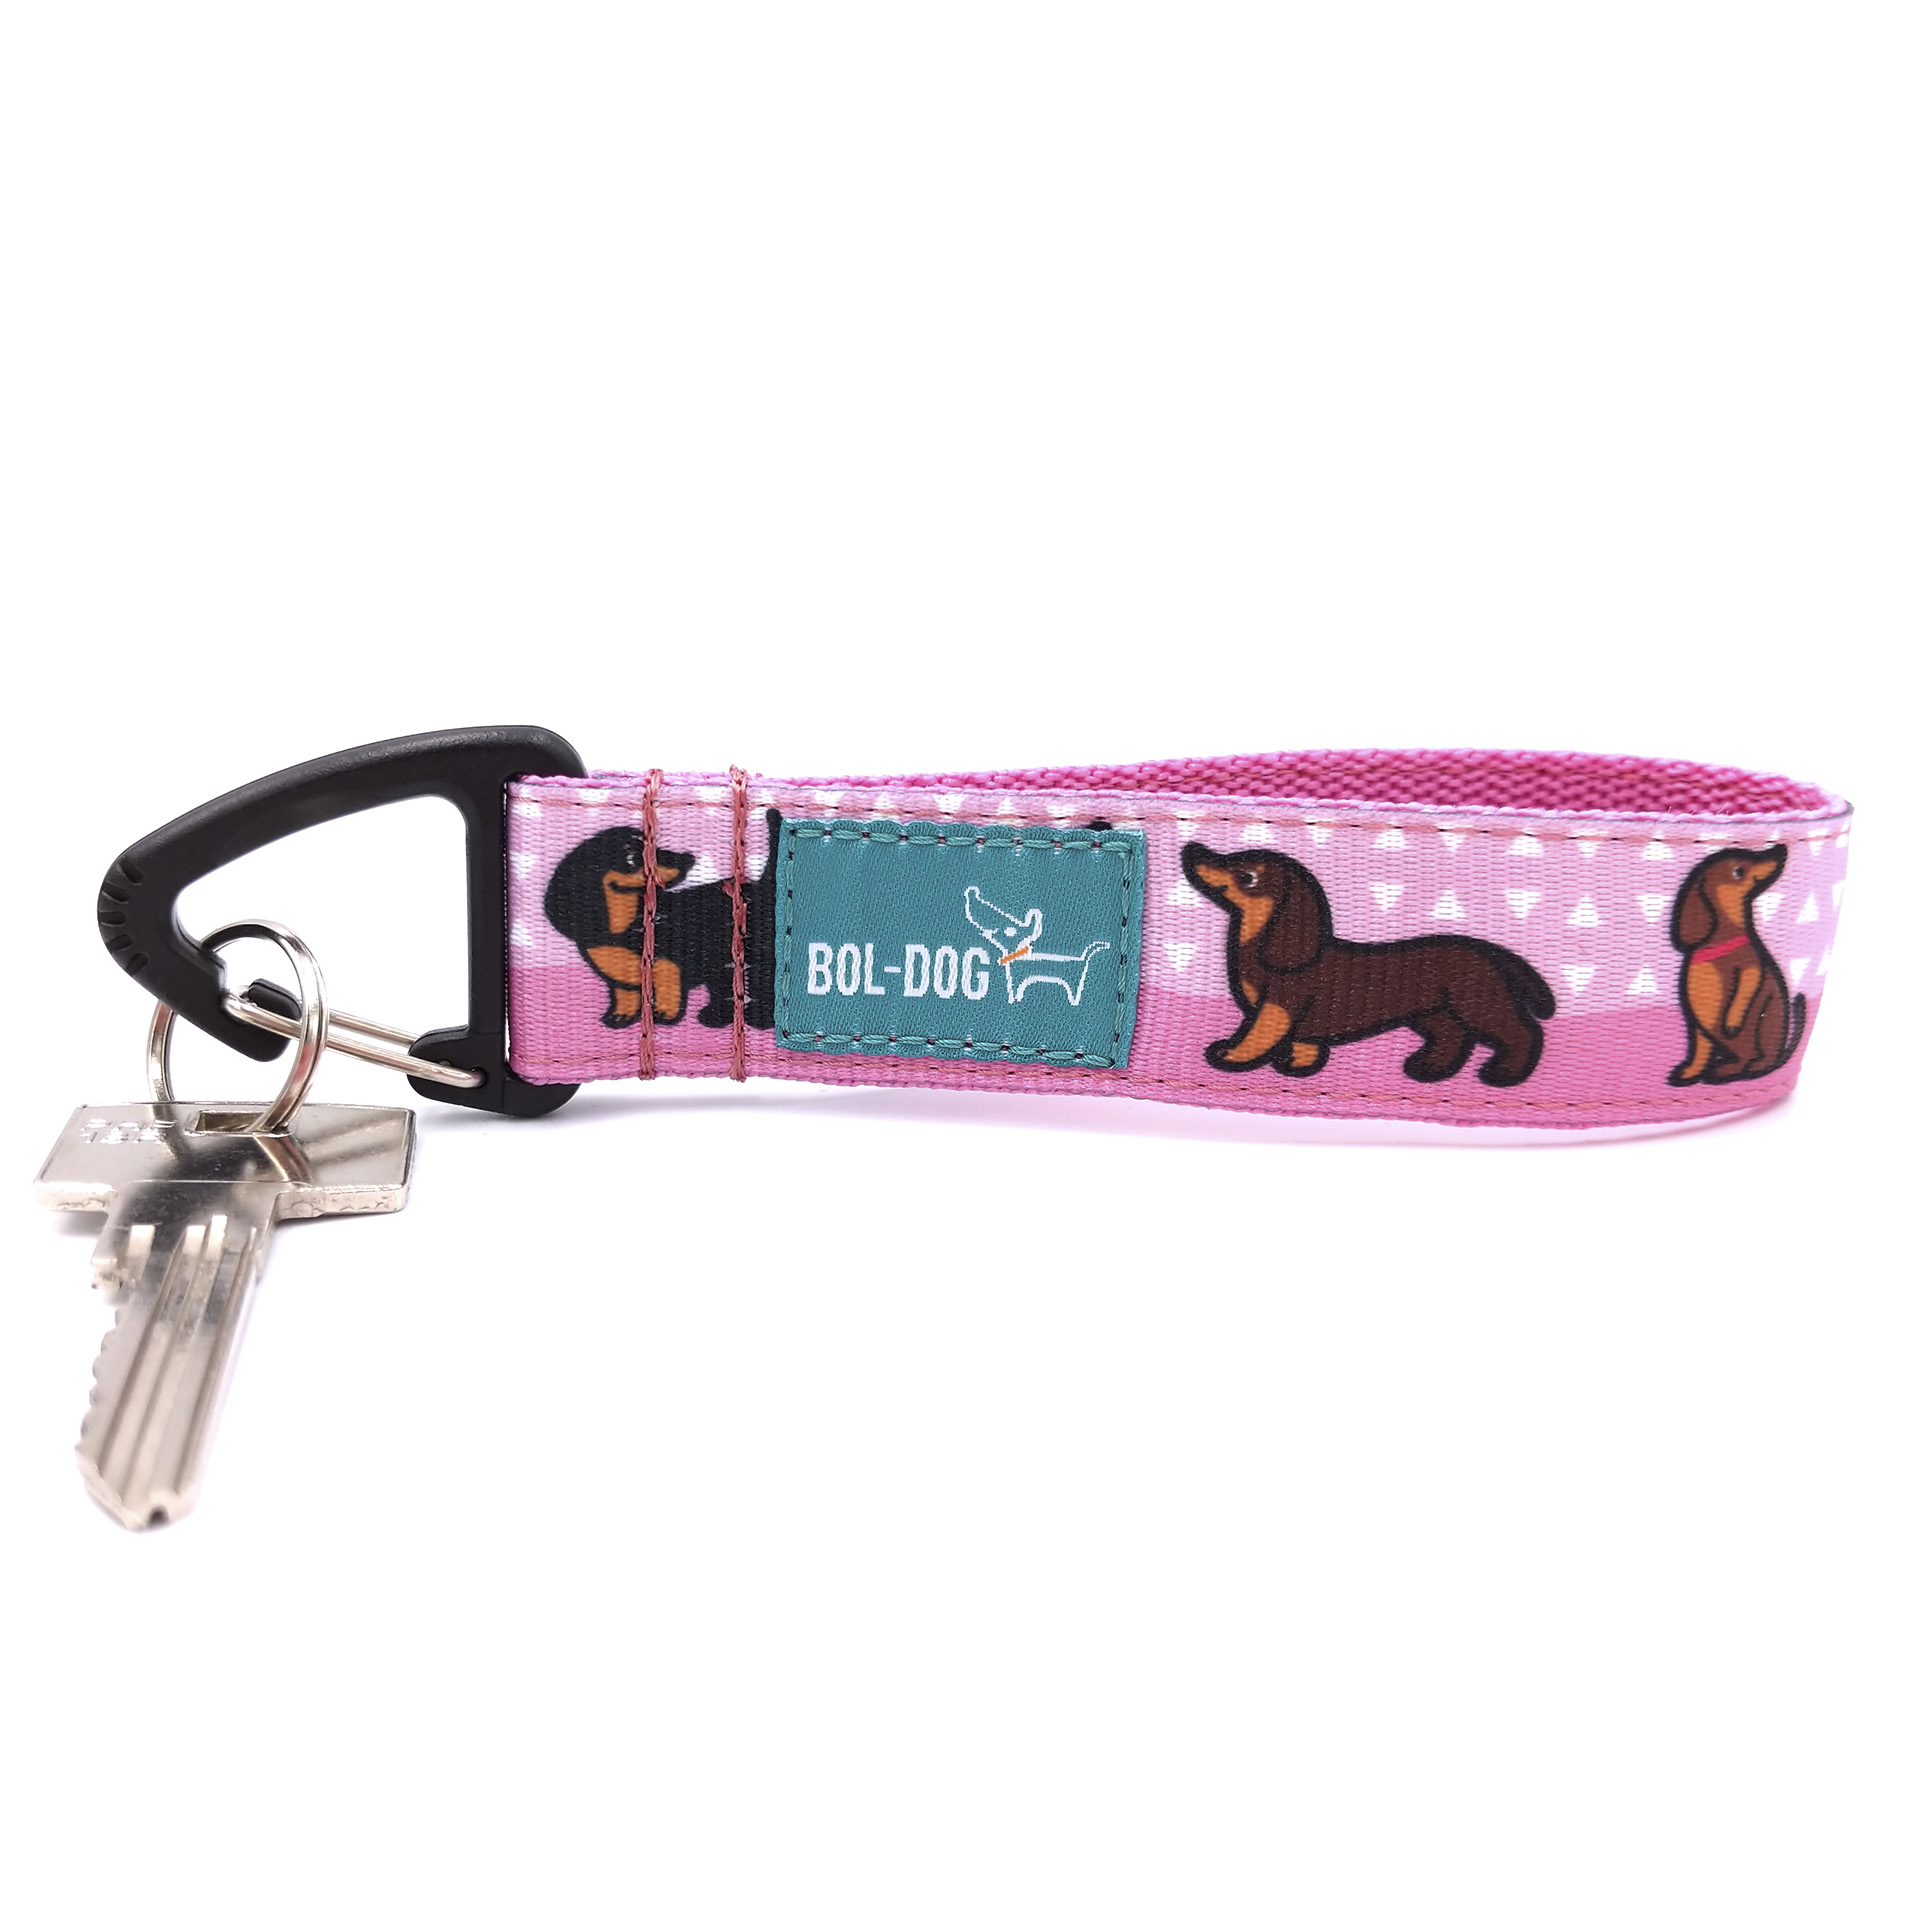 Doxie girl key holder